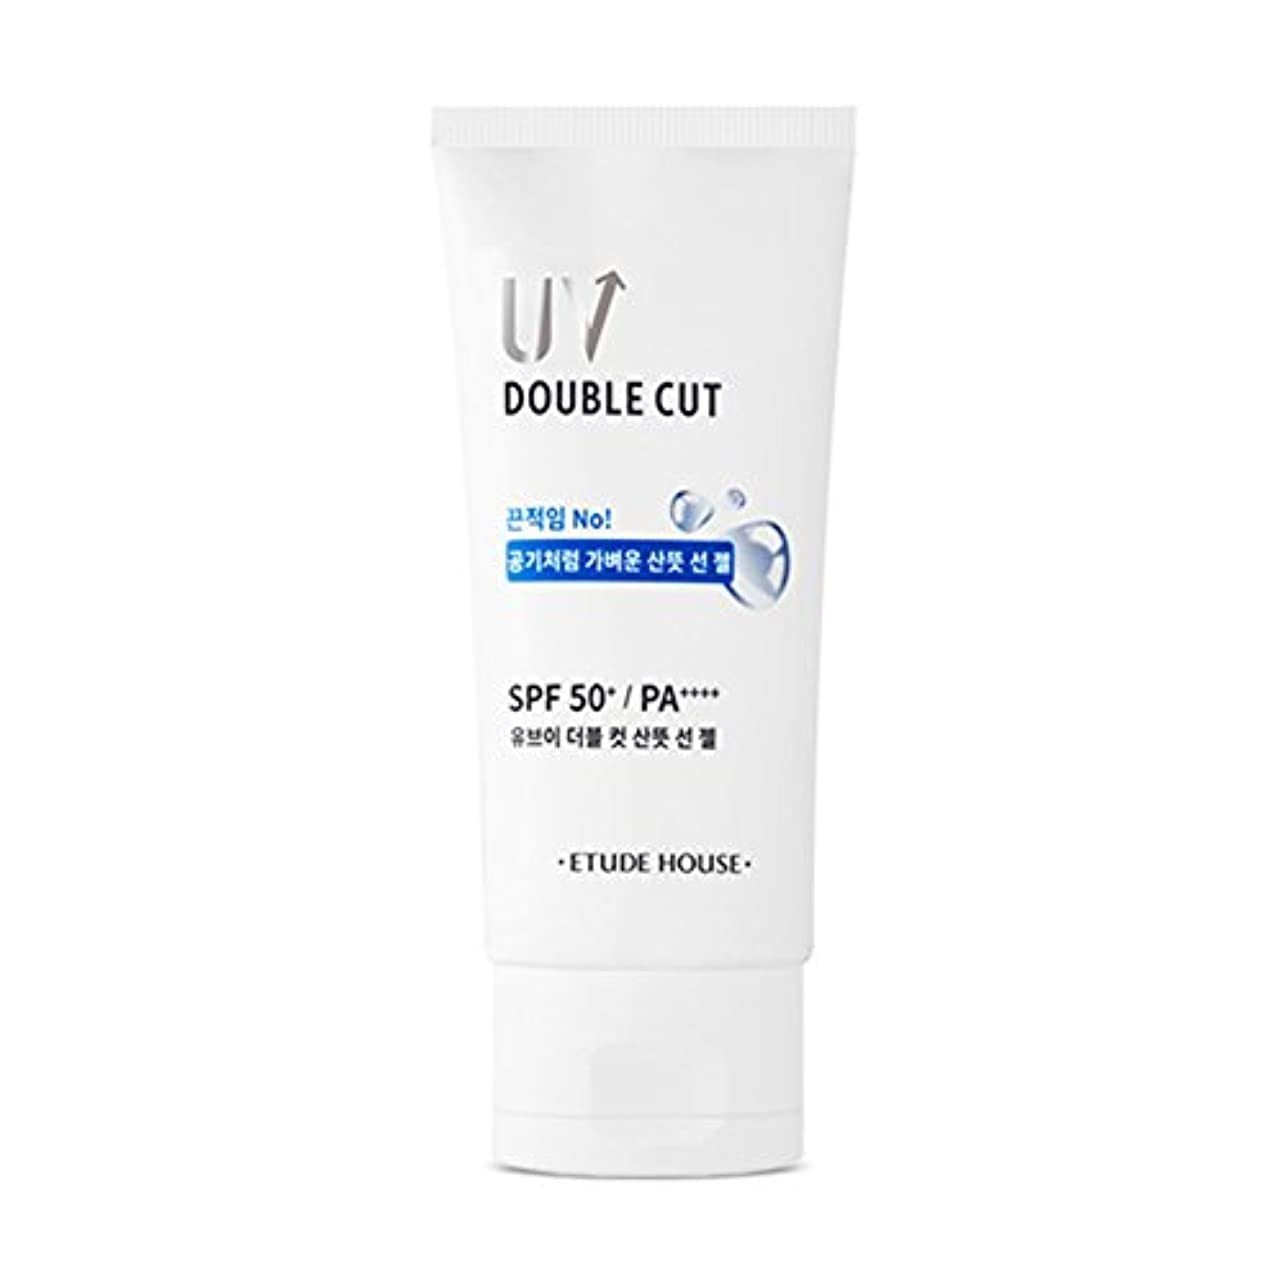 ETUDE HOUSE エチュードハウス UV DOUBLE CUT FRESH SUN GEL SPF 50+ PA+++ 50ml/1.69 fl.oz